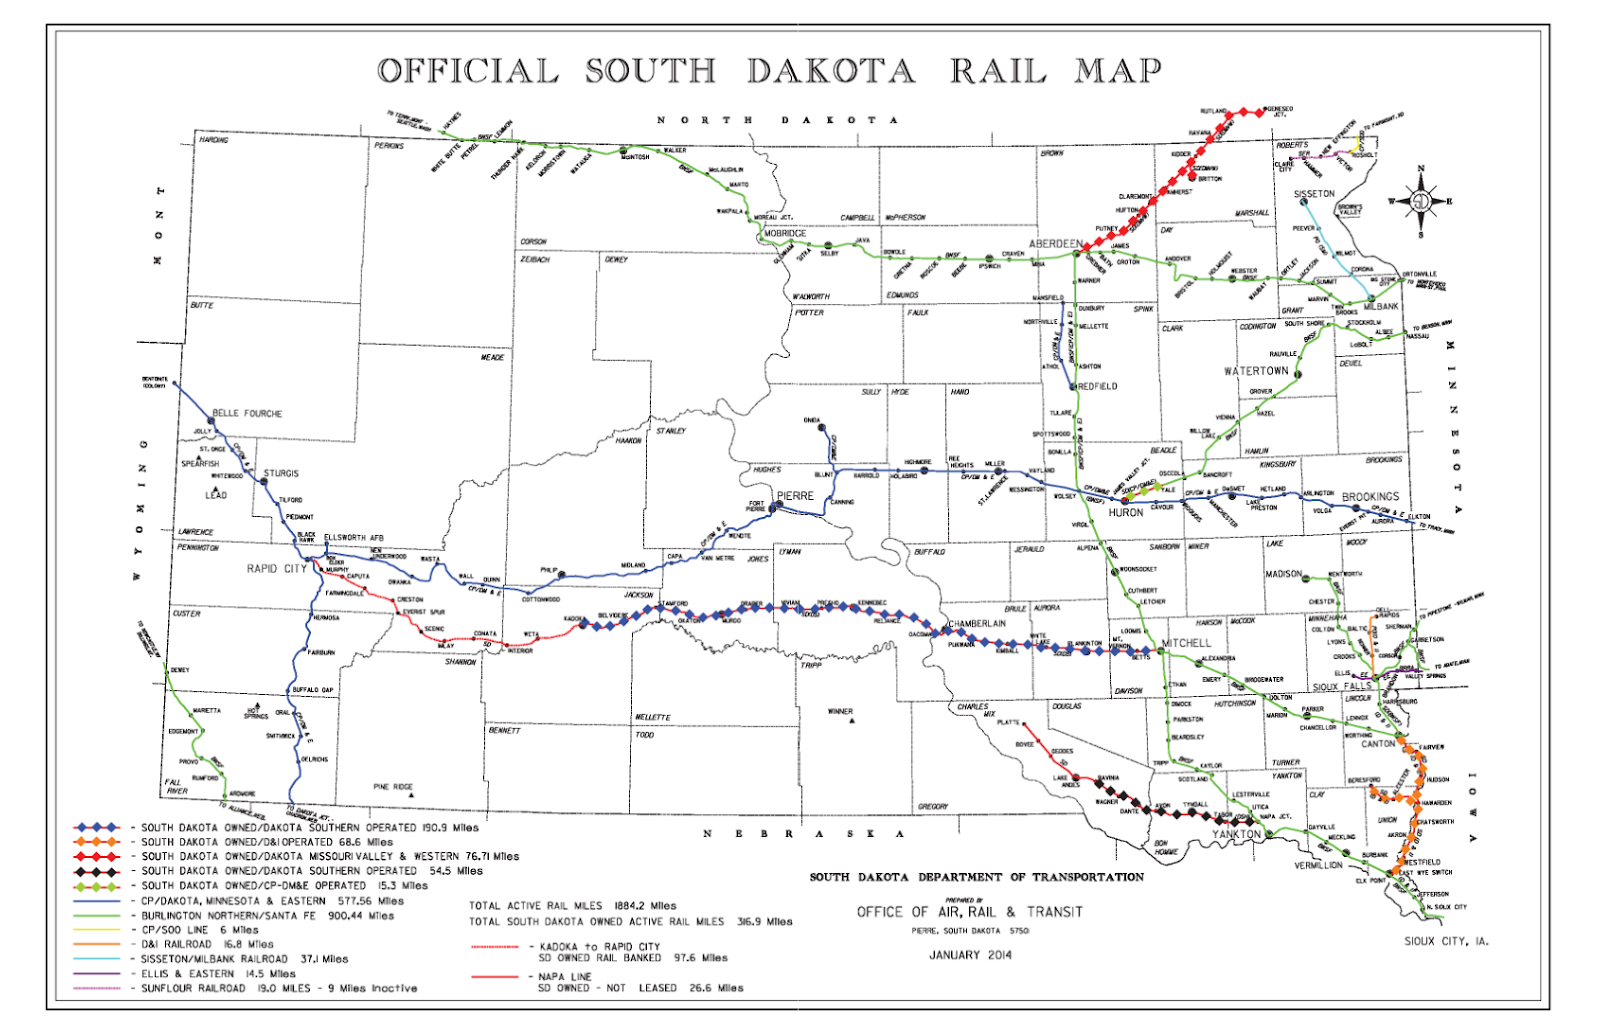 map of south dakota s rail system as of 2014 source